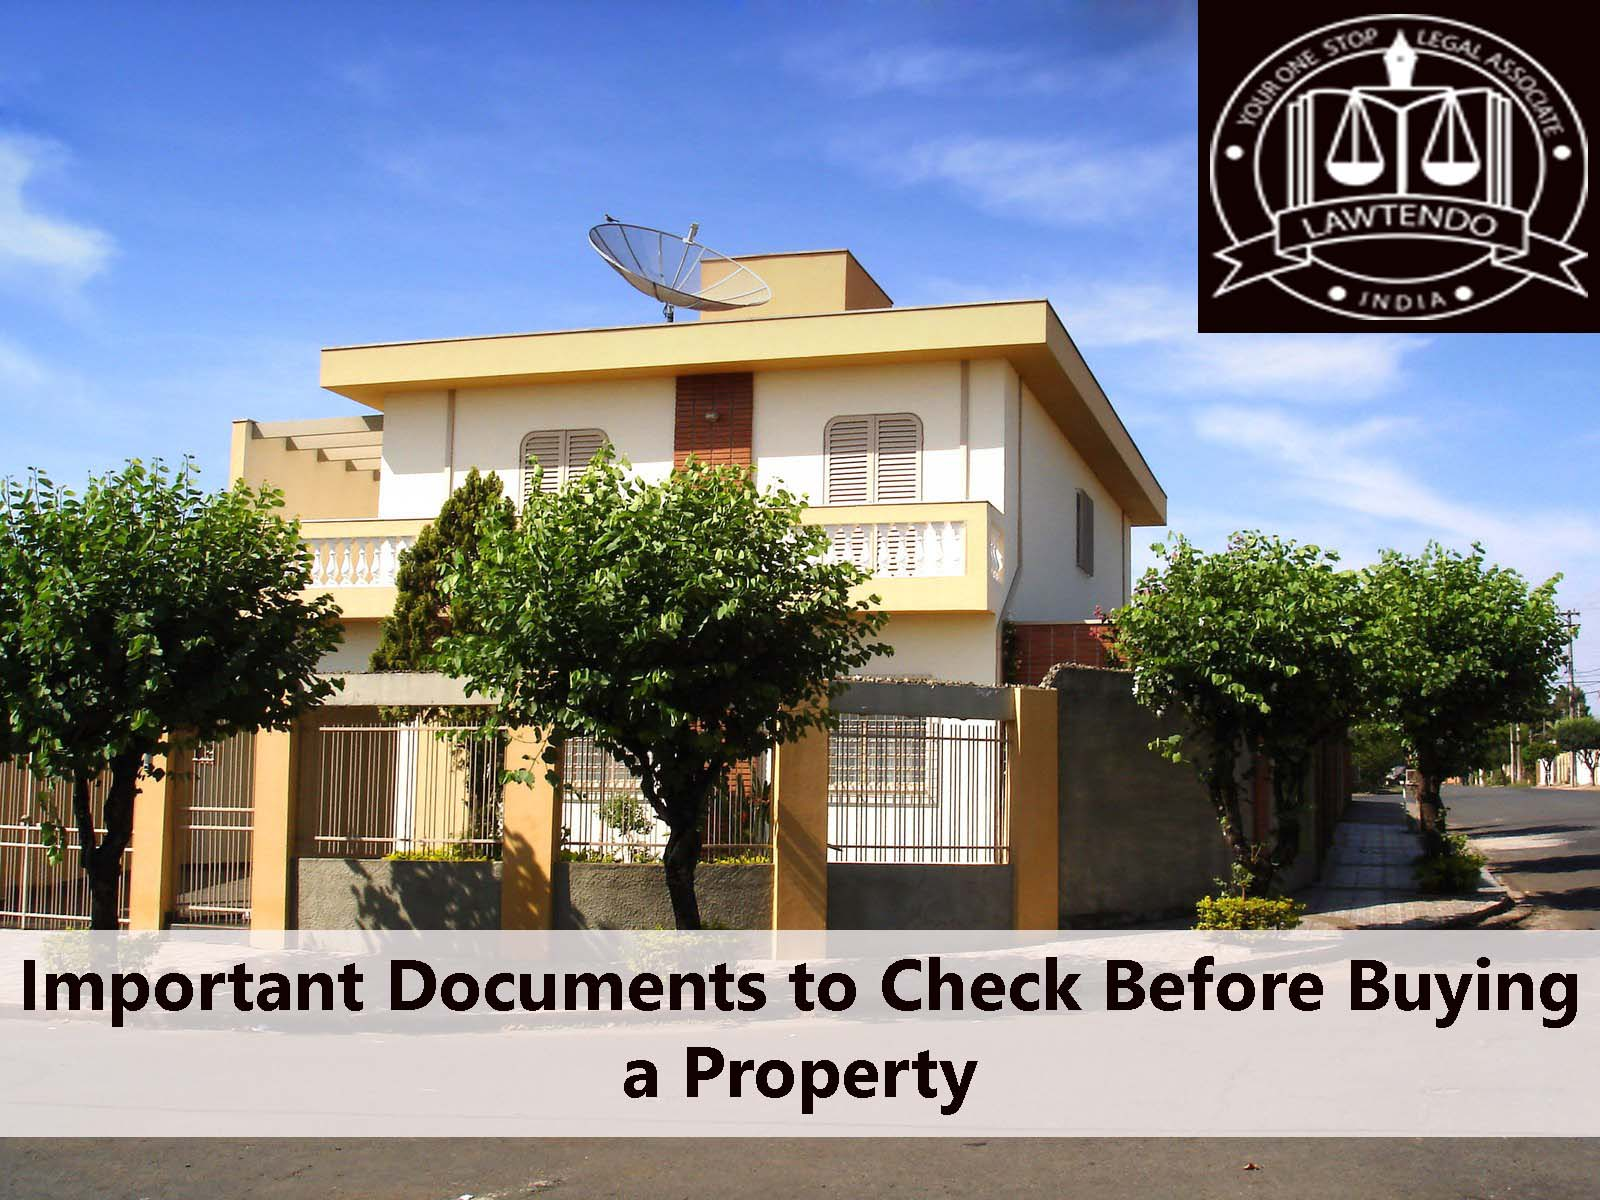 Important Documents to check before buying a property